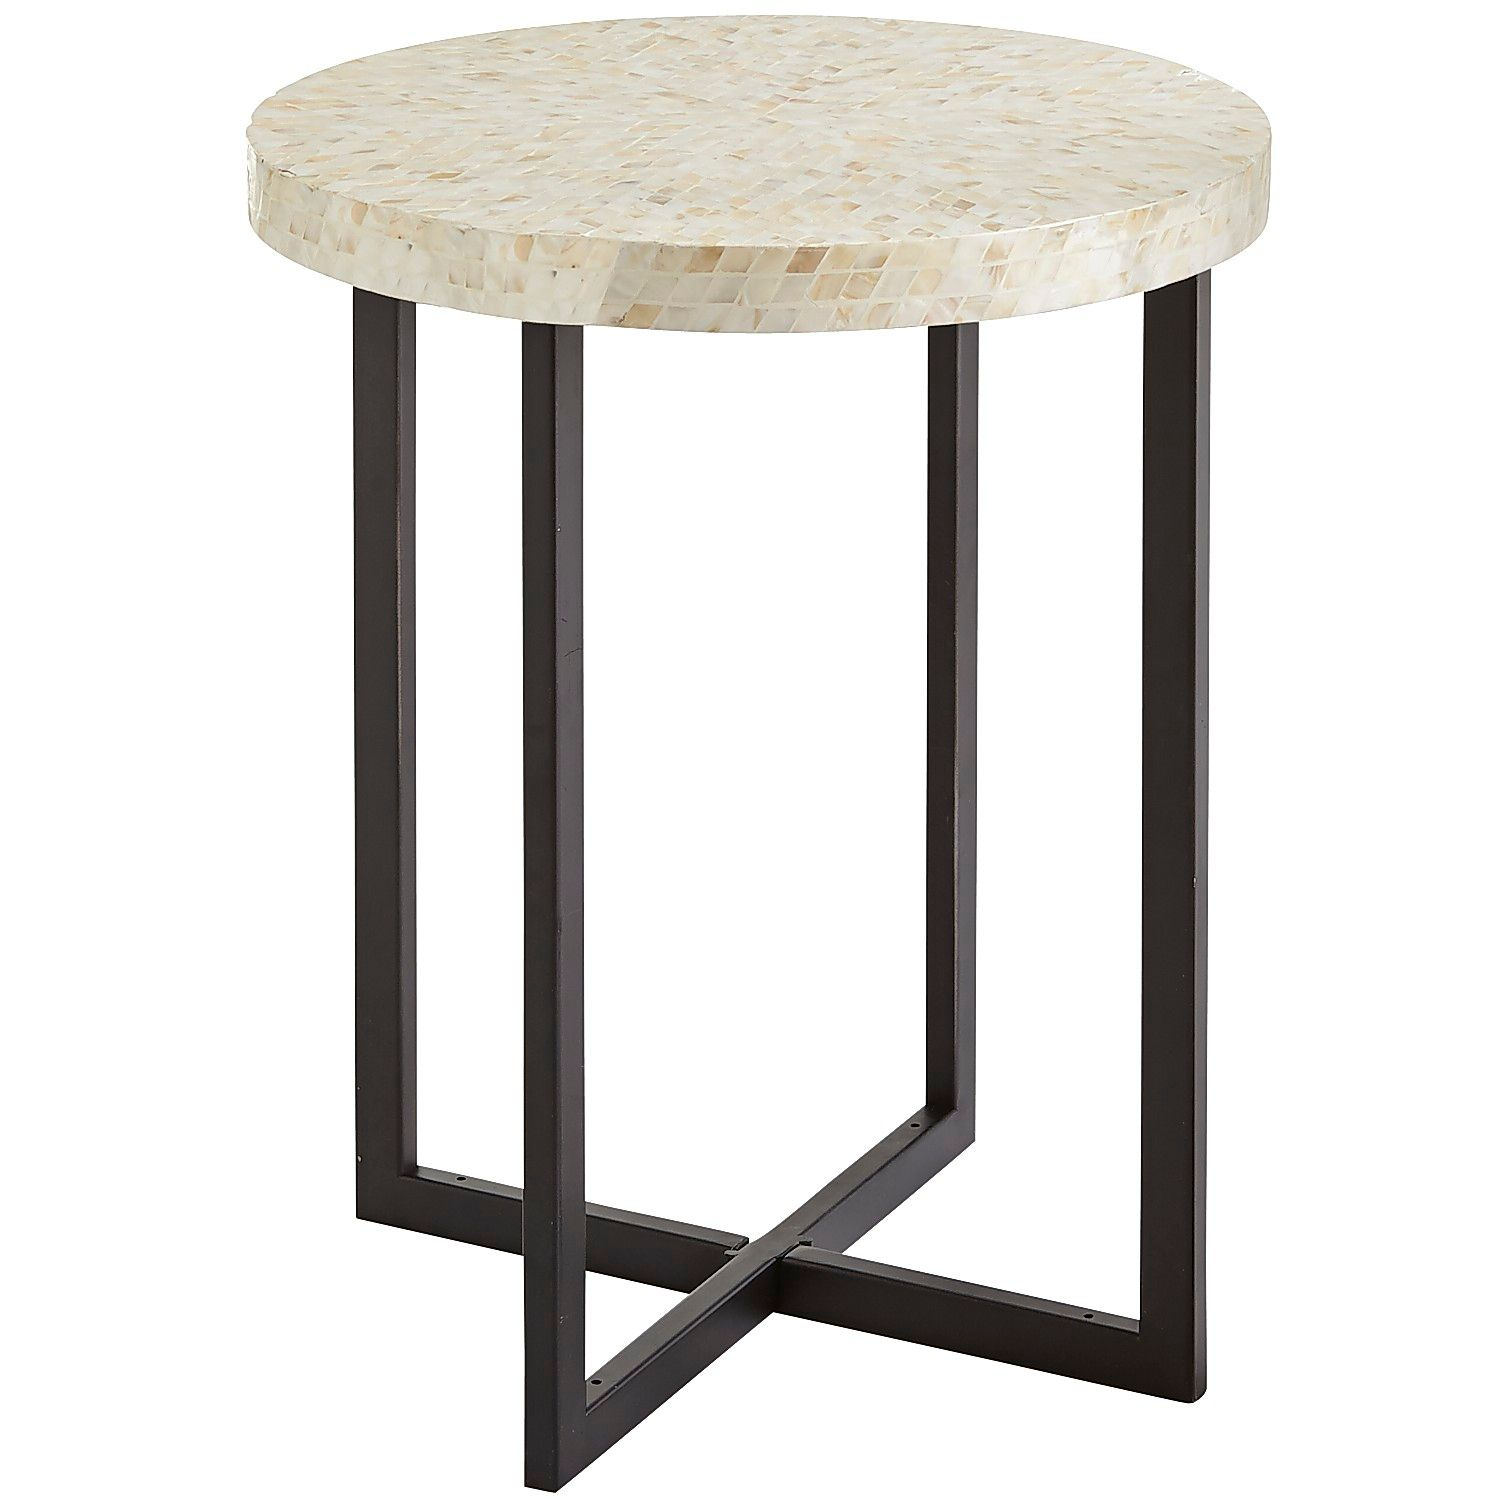 mother pearl end table pier imports accent tables oval coffee with shelf half round bunnings chairs and moon glass mid century modern dining skirts decorator west elm coupon code